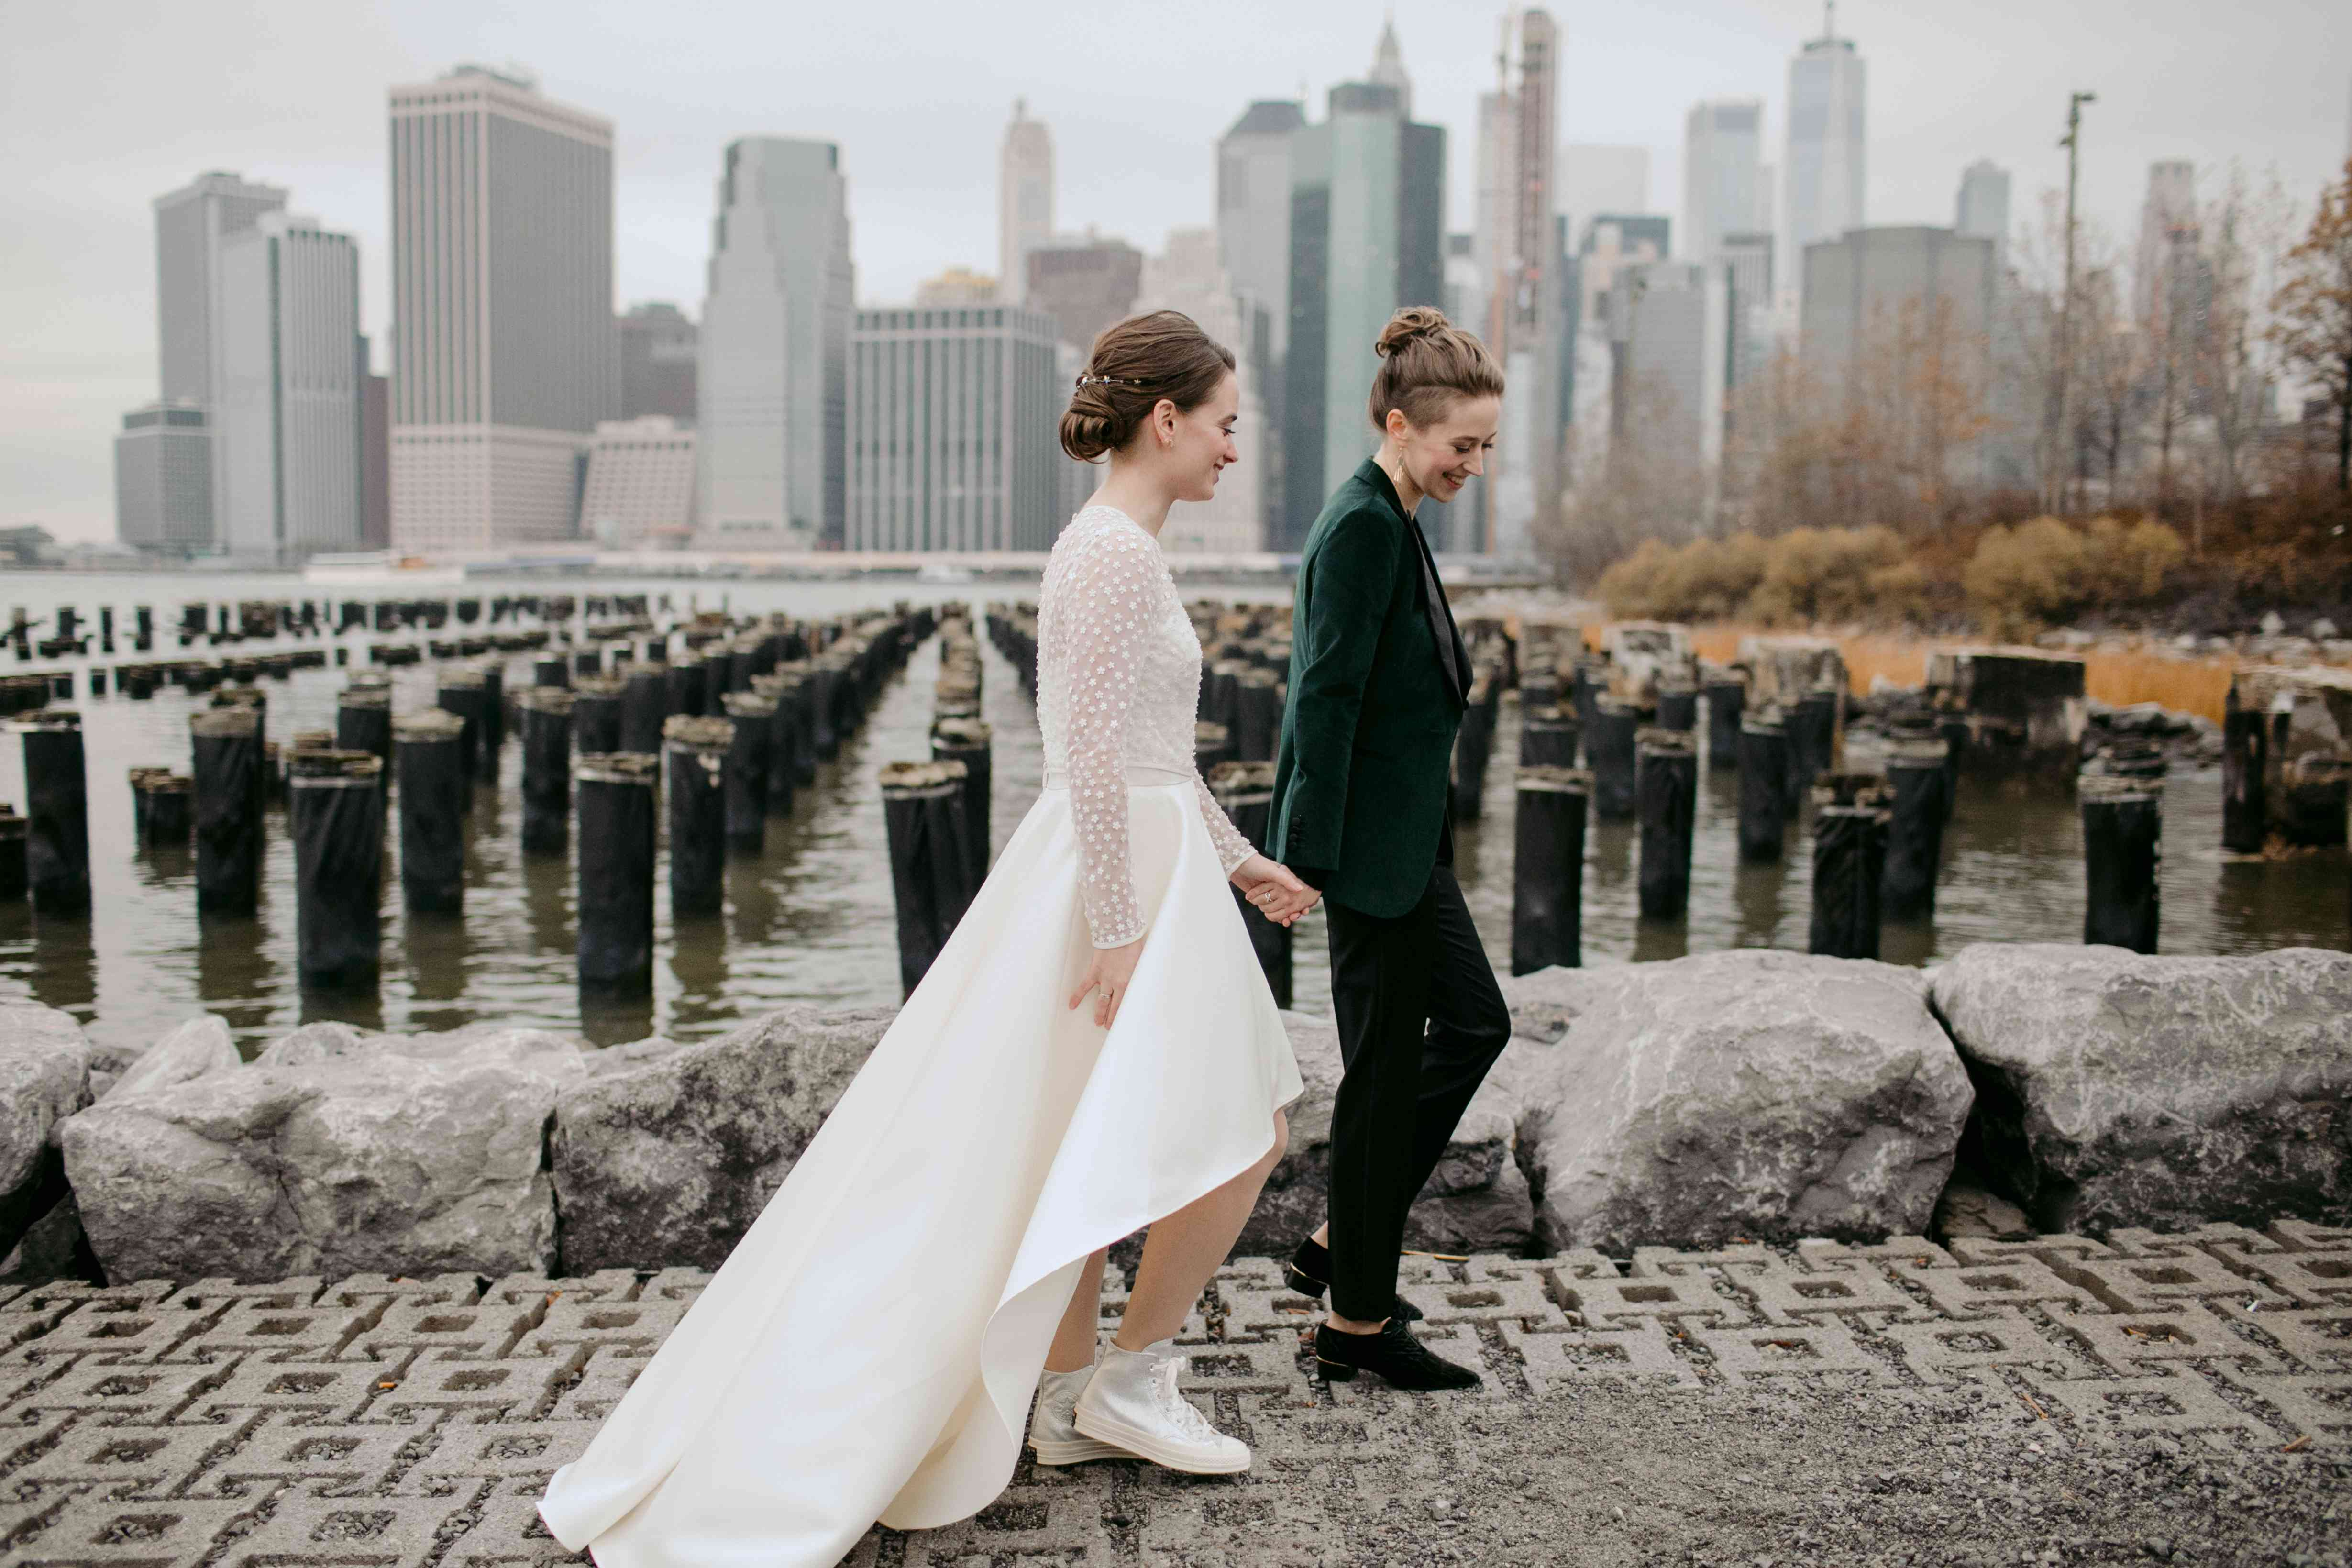 The couple walk along the waterfront